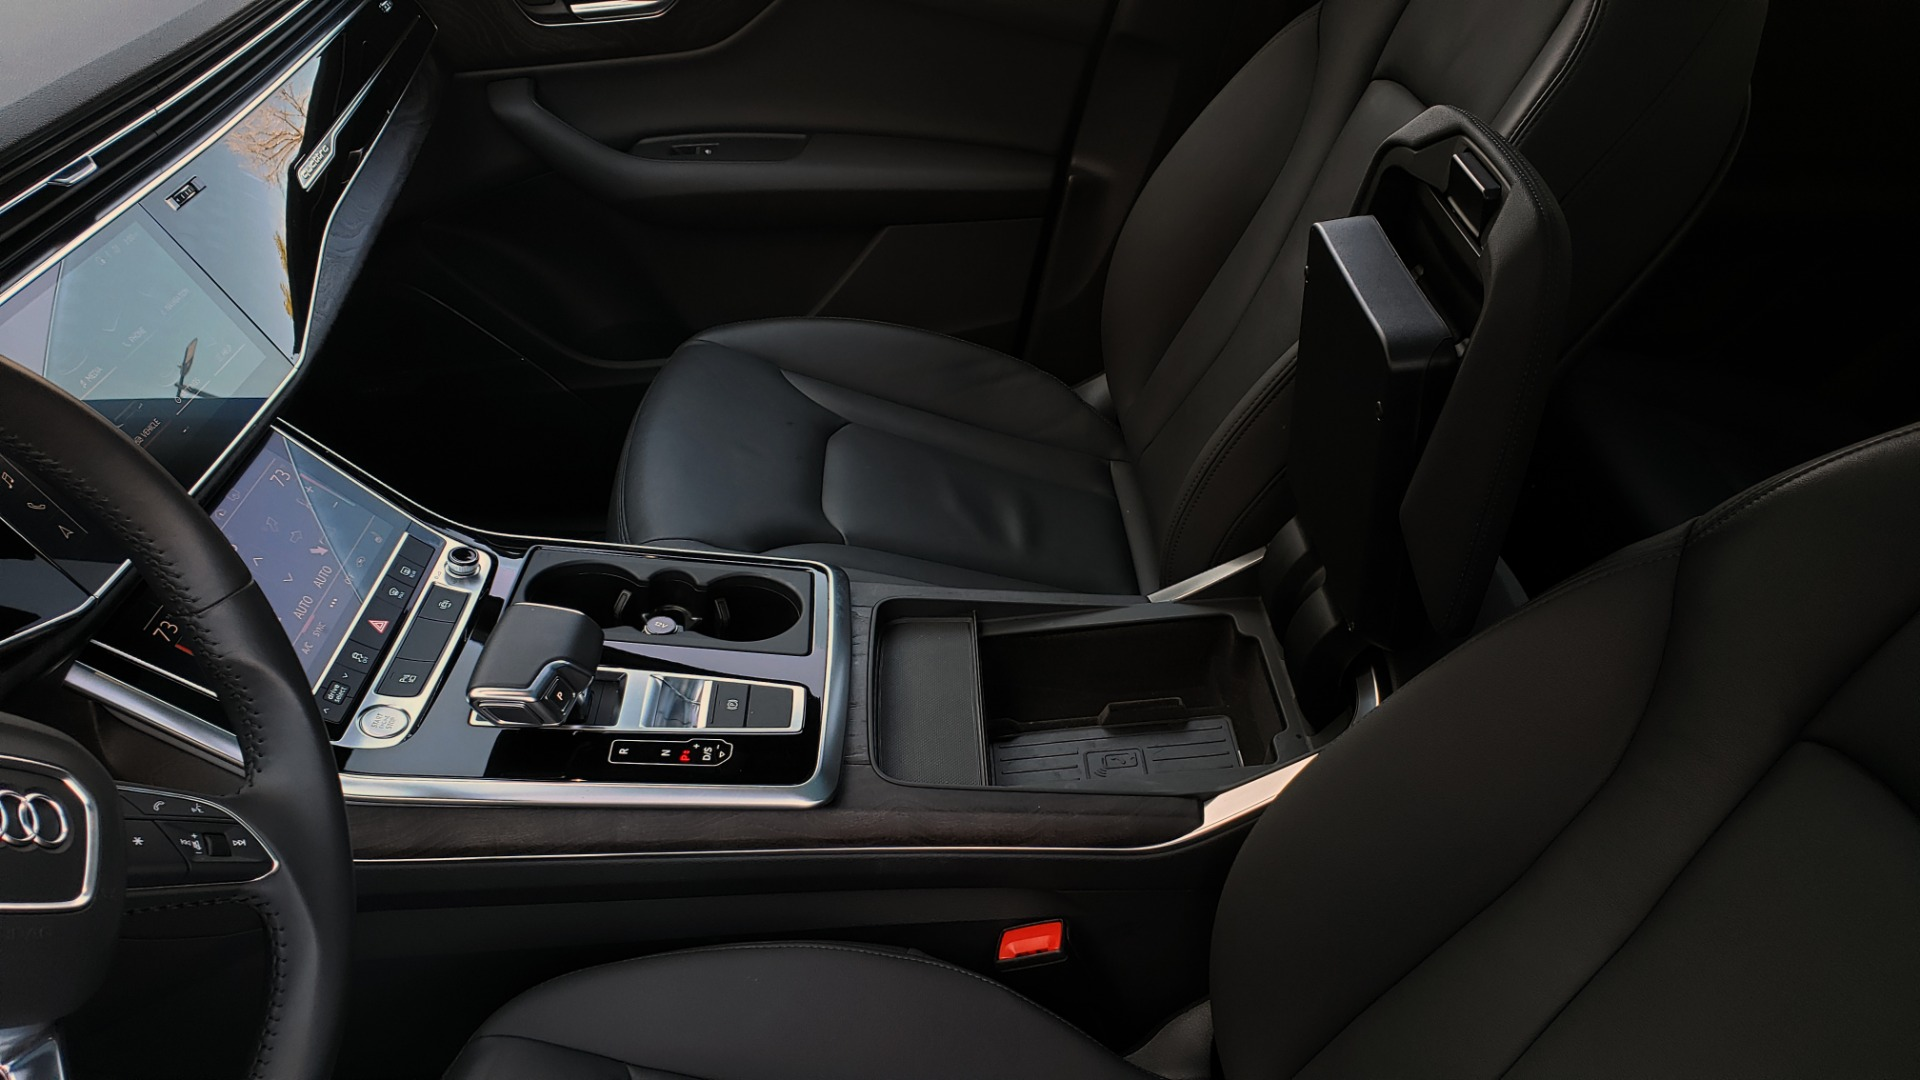 Used 2020 Audi Q7 PREMIUM PLUS / NAV / SUNROOF / 3-ROW / REARVIEW for sale $50,695 at Formula Imports in Charlotte NC 28227 59